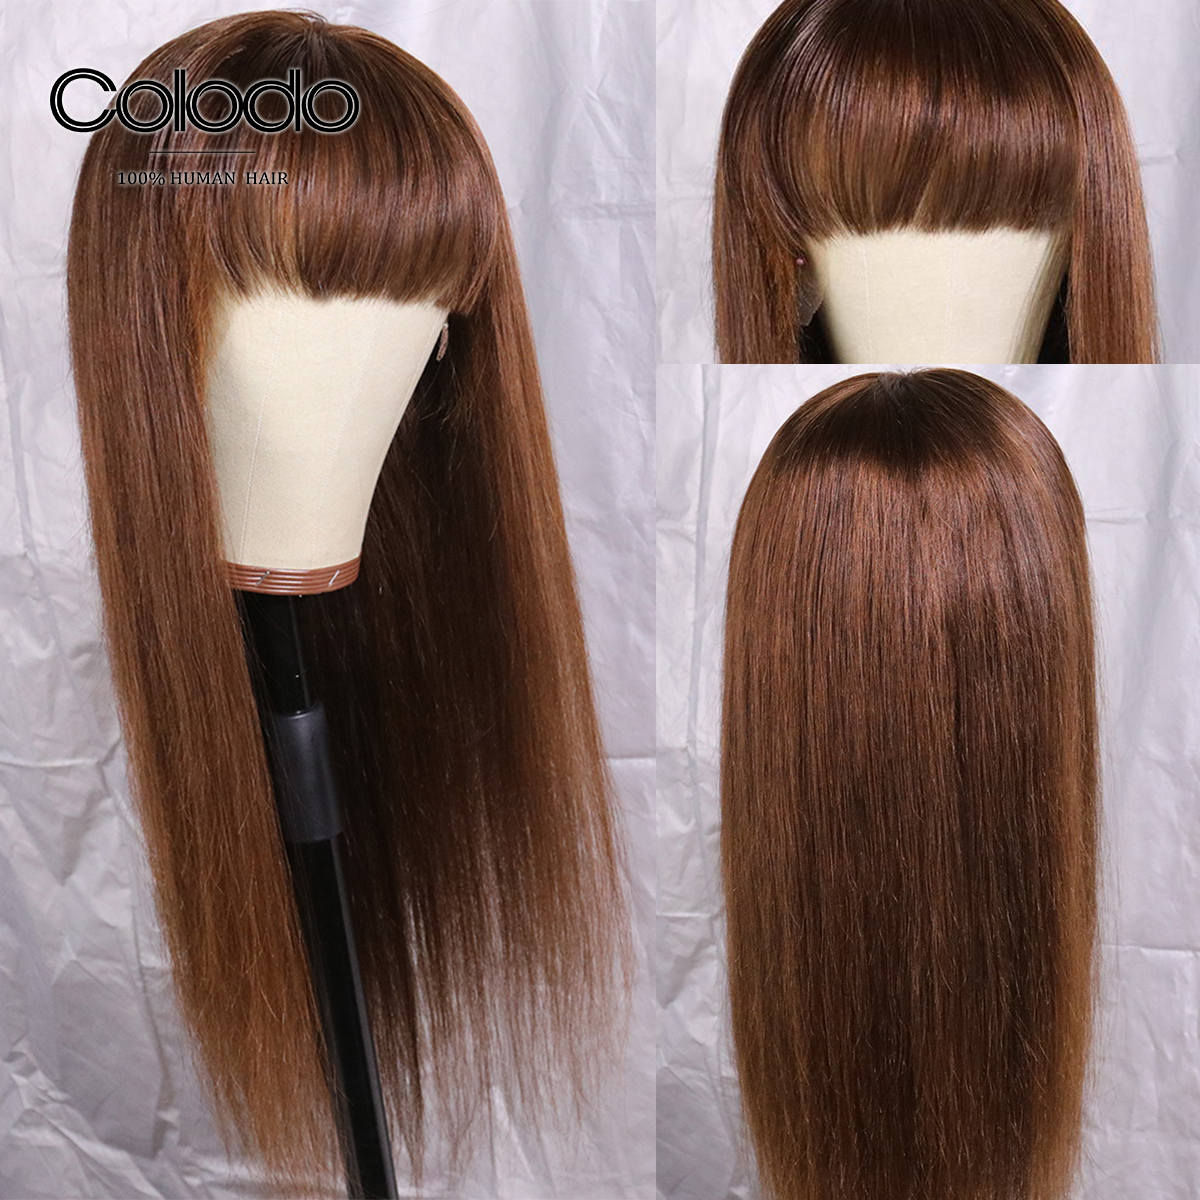 COLODO Brown Color Human Hair Wig Brazilian 99j Straight Wigs With Bangs Remy Hair Lace Front